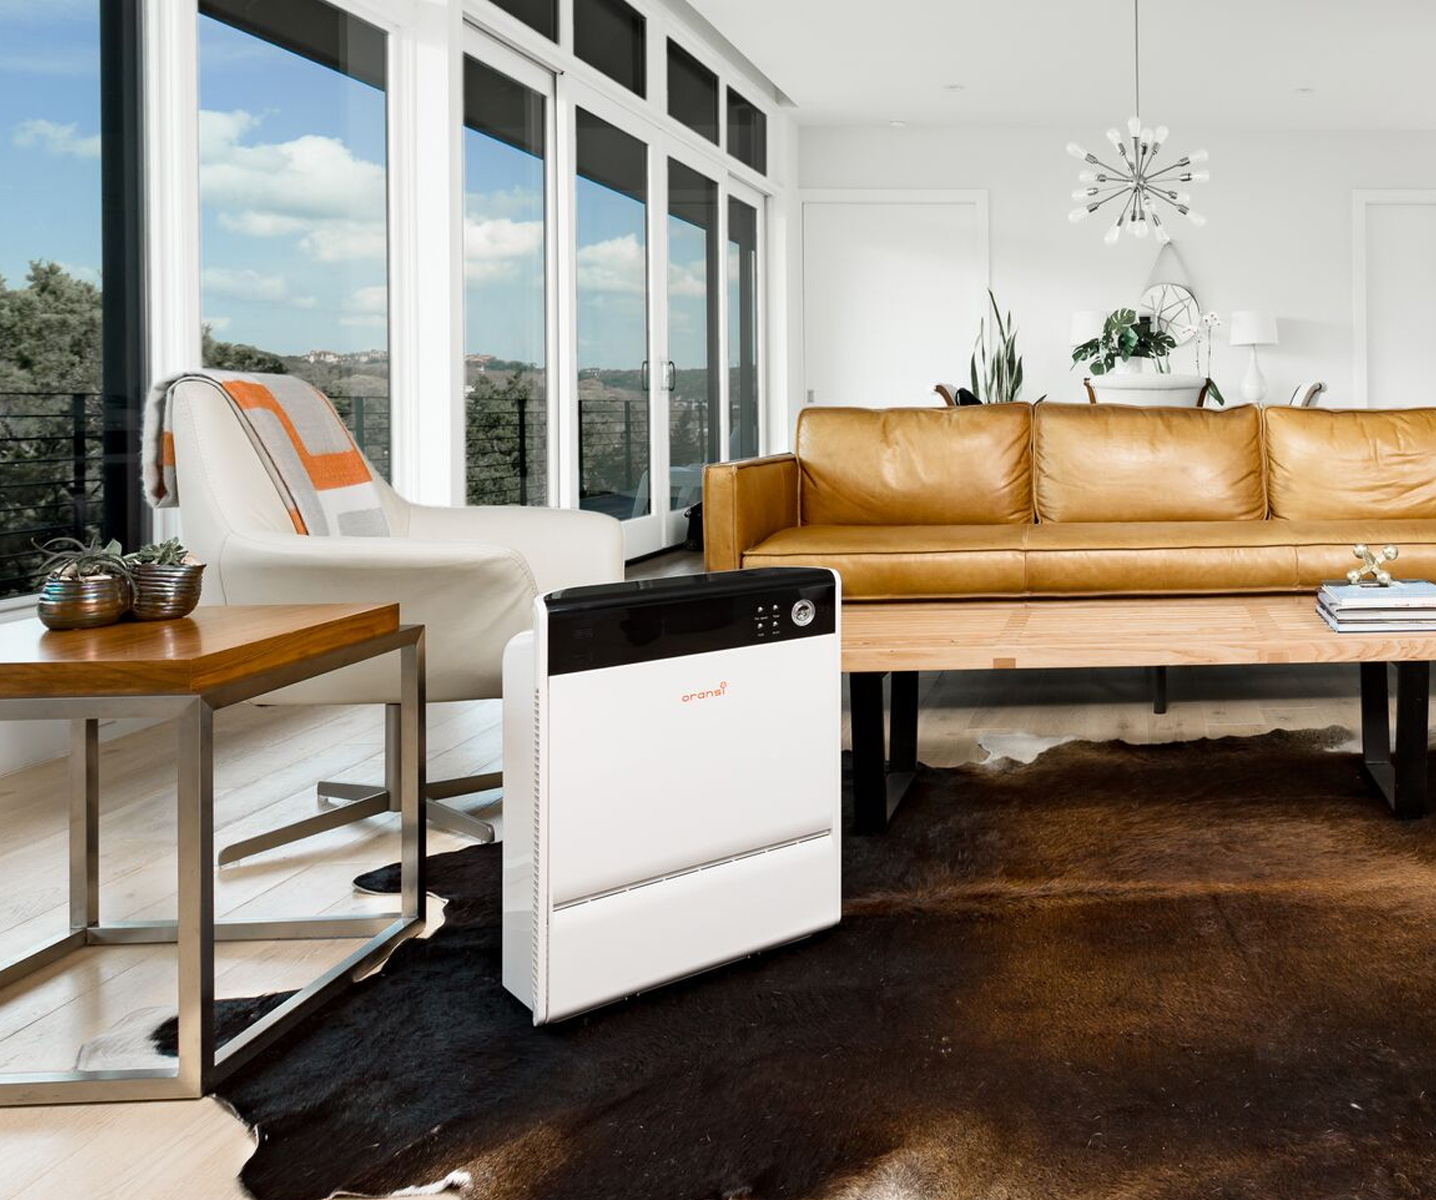 Max air purifier in living area